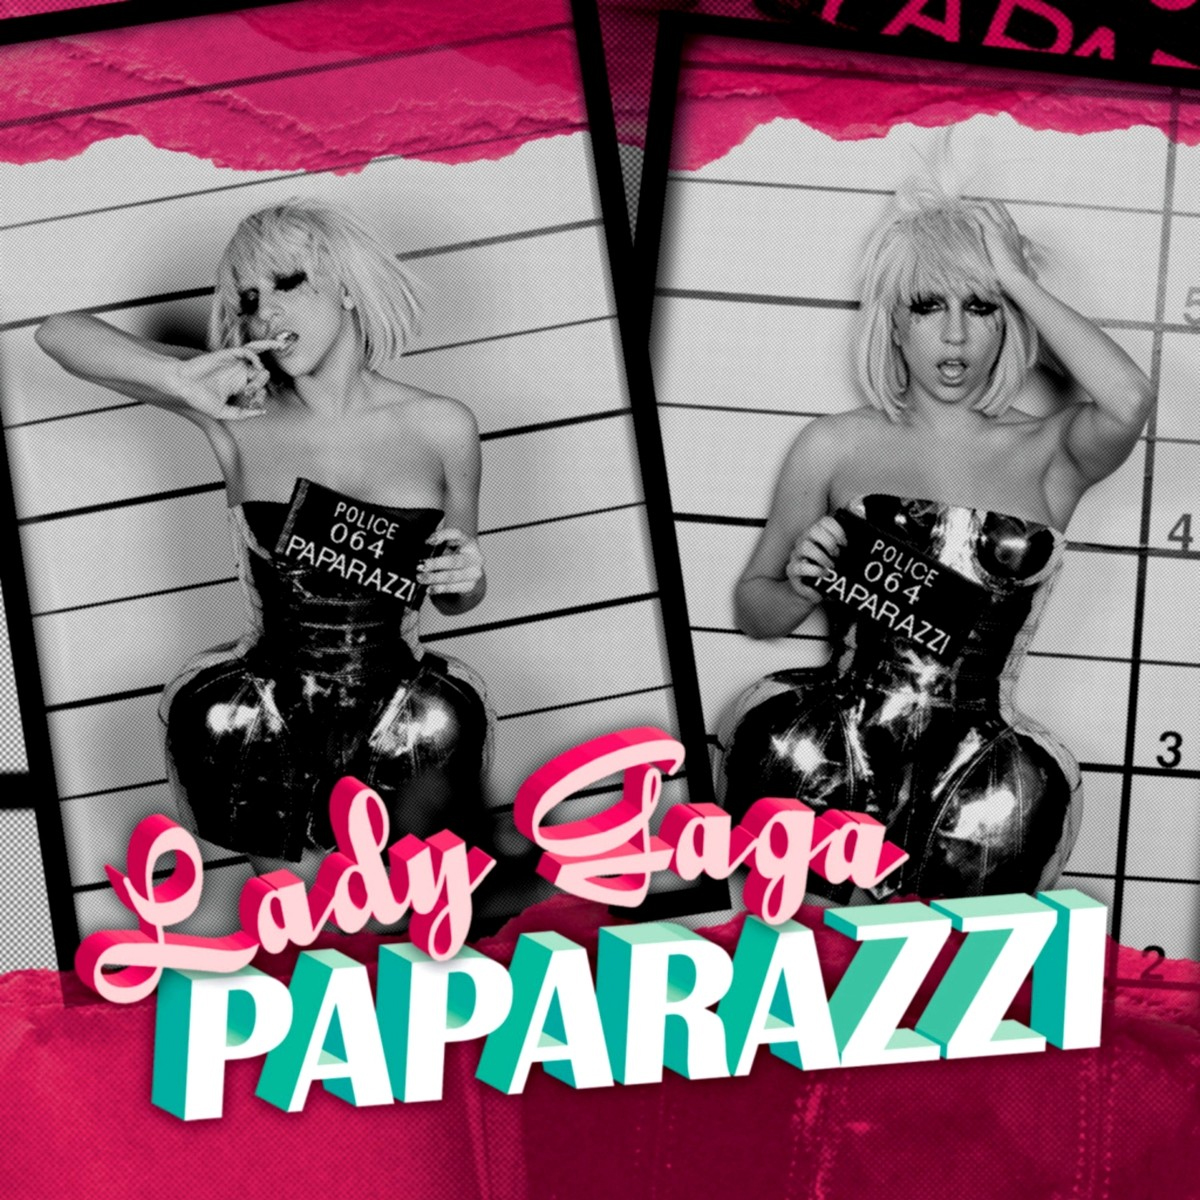 http://1.bp.blogspot.com/-pGFmtQof6CU/TZqZLHFPNFI/AAAAAAAAABY/du70IjyqCSs/s1600/Lady-GaGa-Paparazzi-Official-Single-Cover.jpg